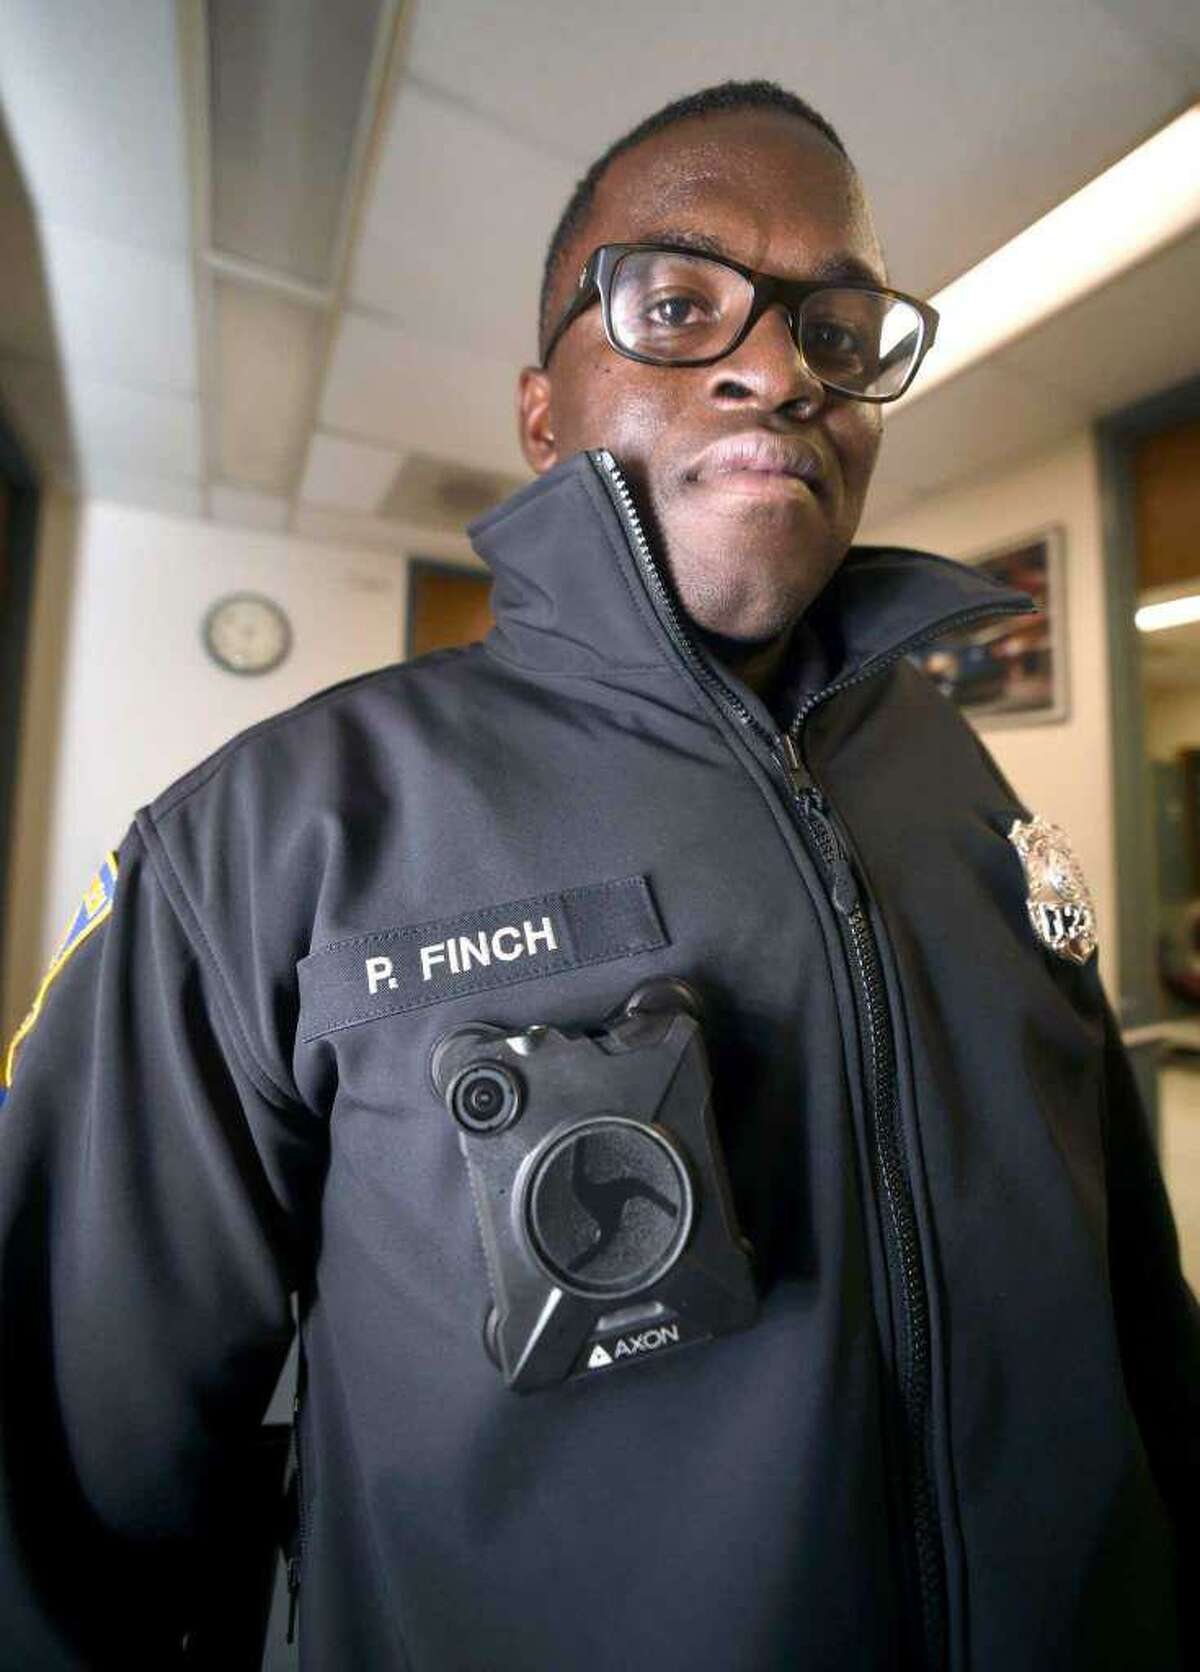 New Haven police Officer Paul Finch was one of the first officers to be given a body camera to test new features in the fall of 2017.